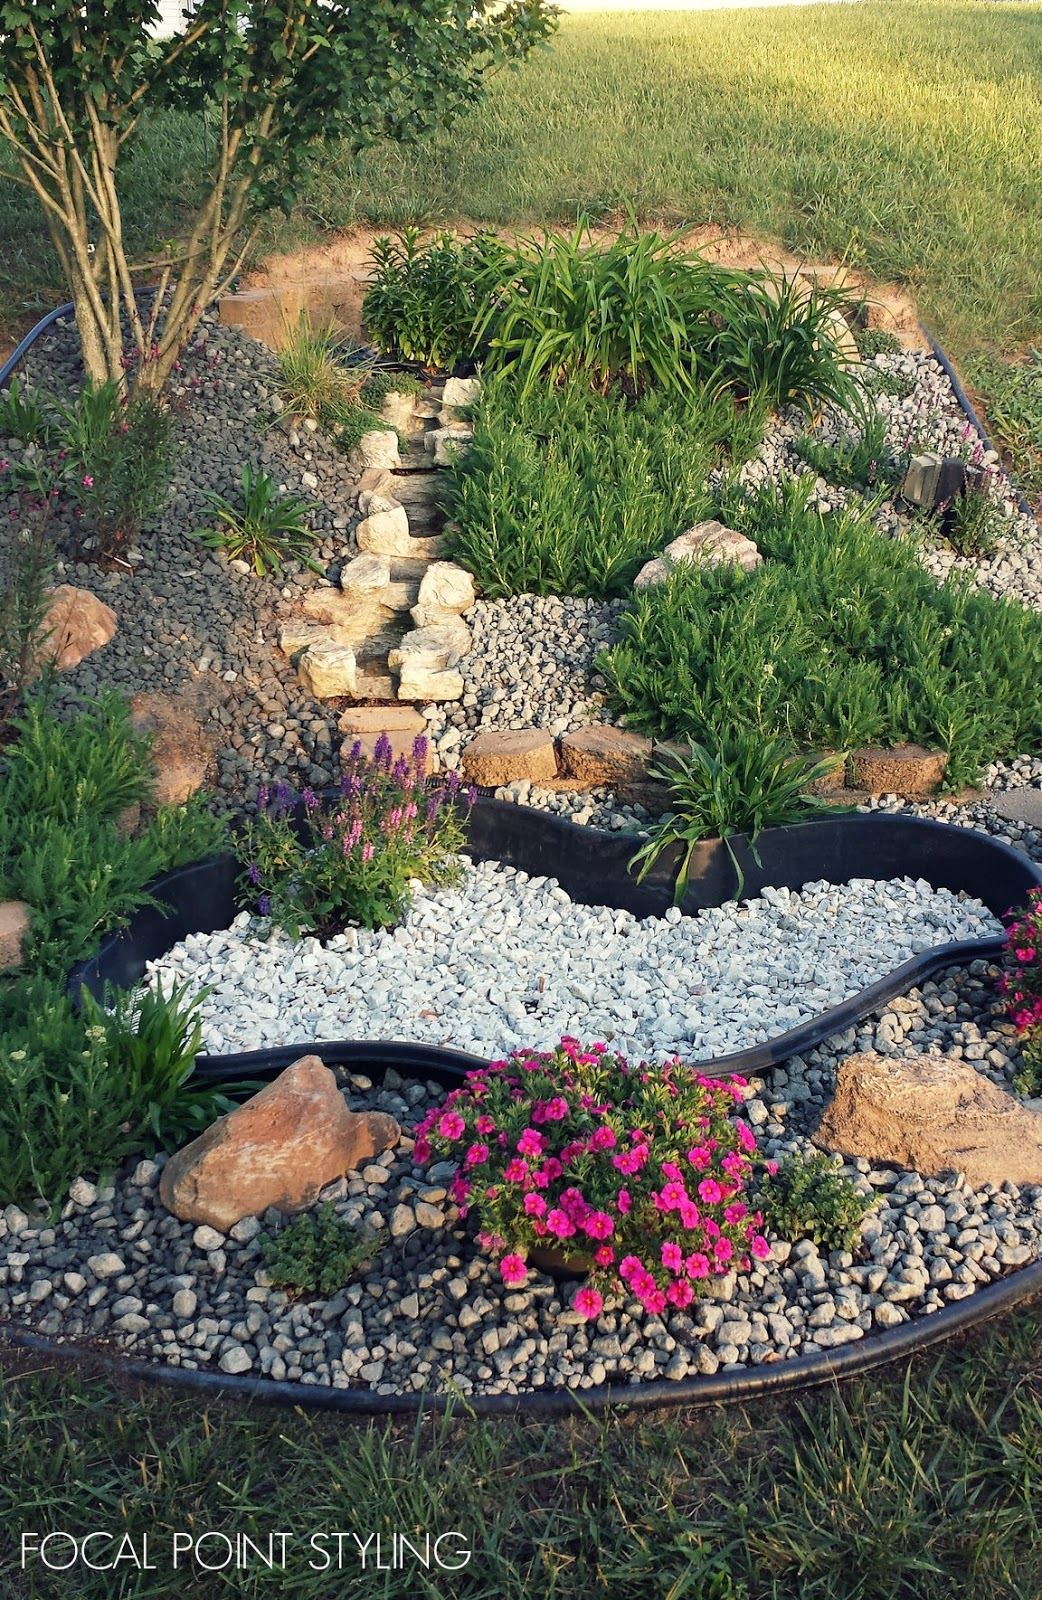 FOCAL POINT STYLING Transforming A Water Garden Into A Rock Garden